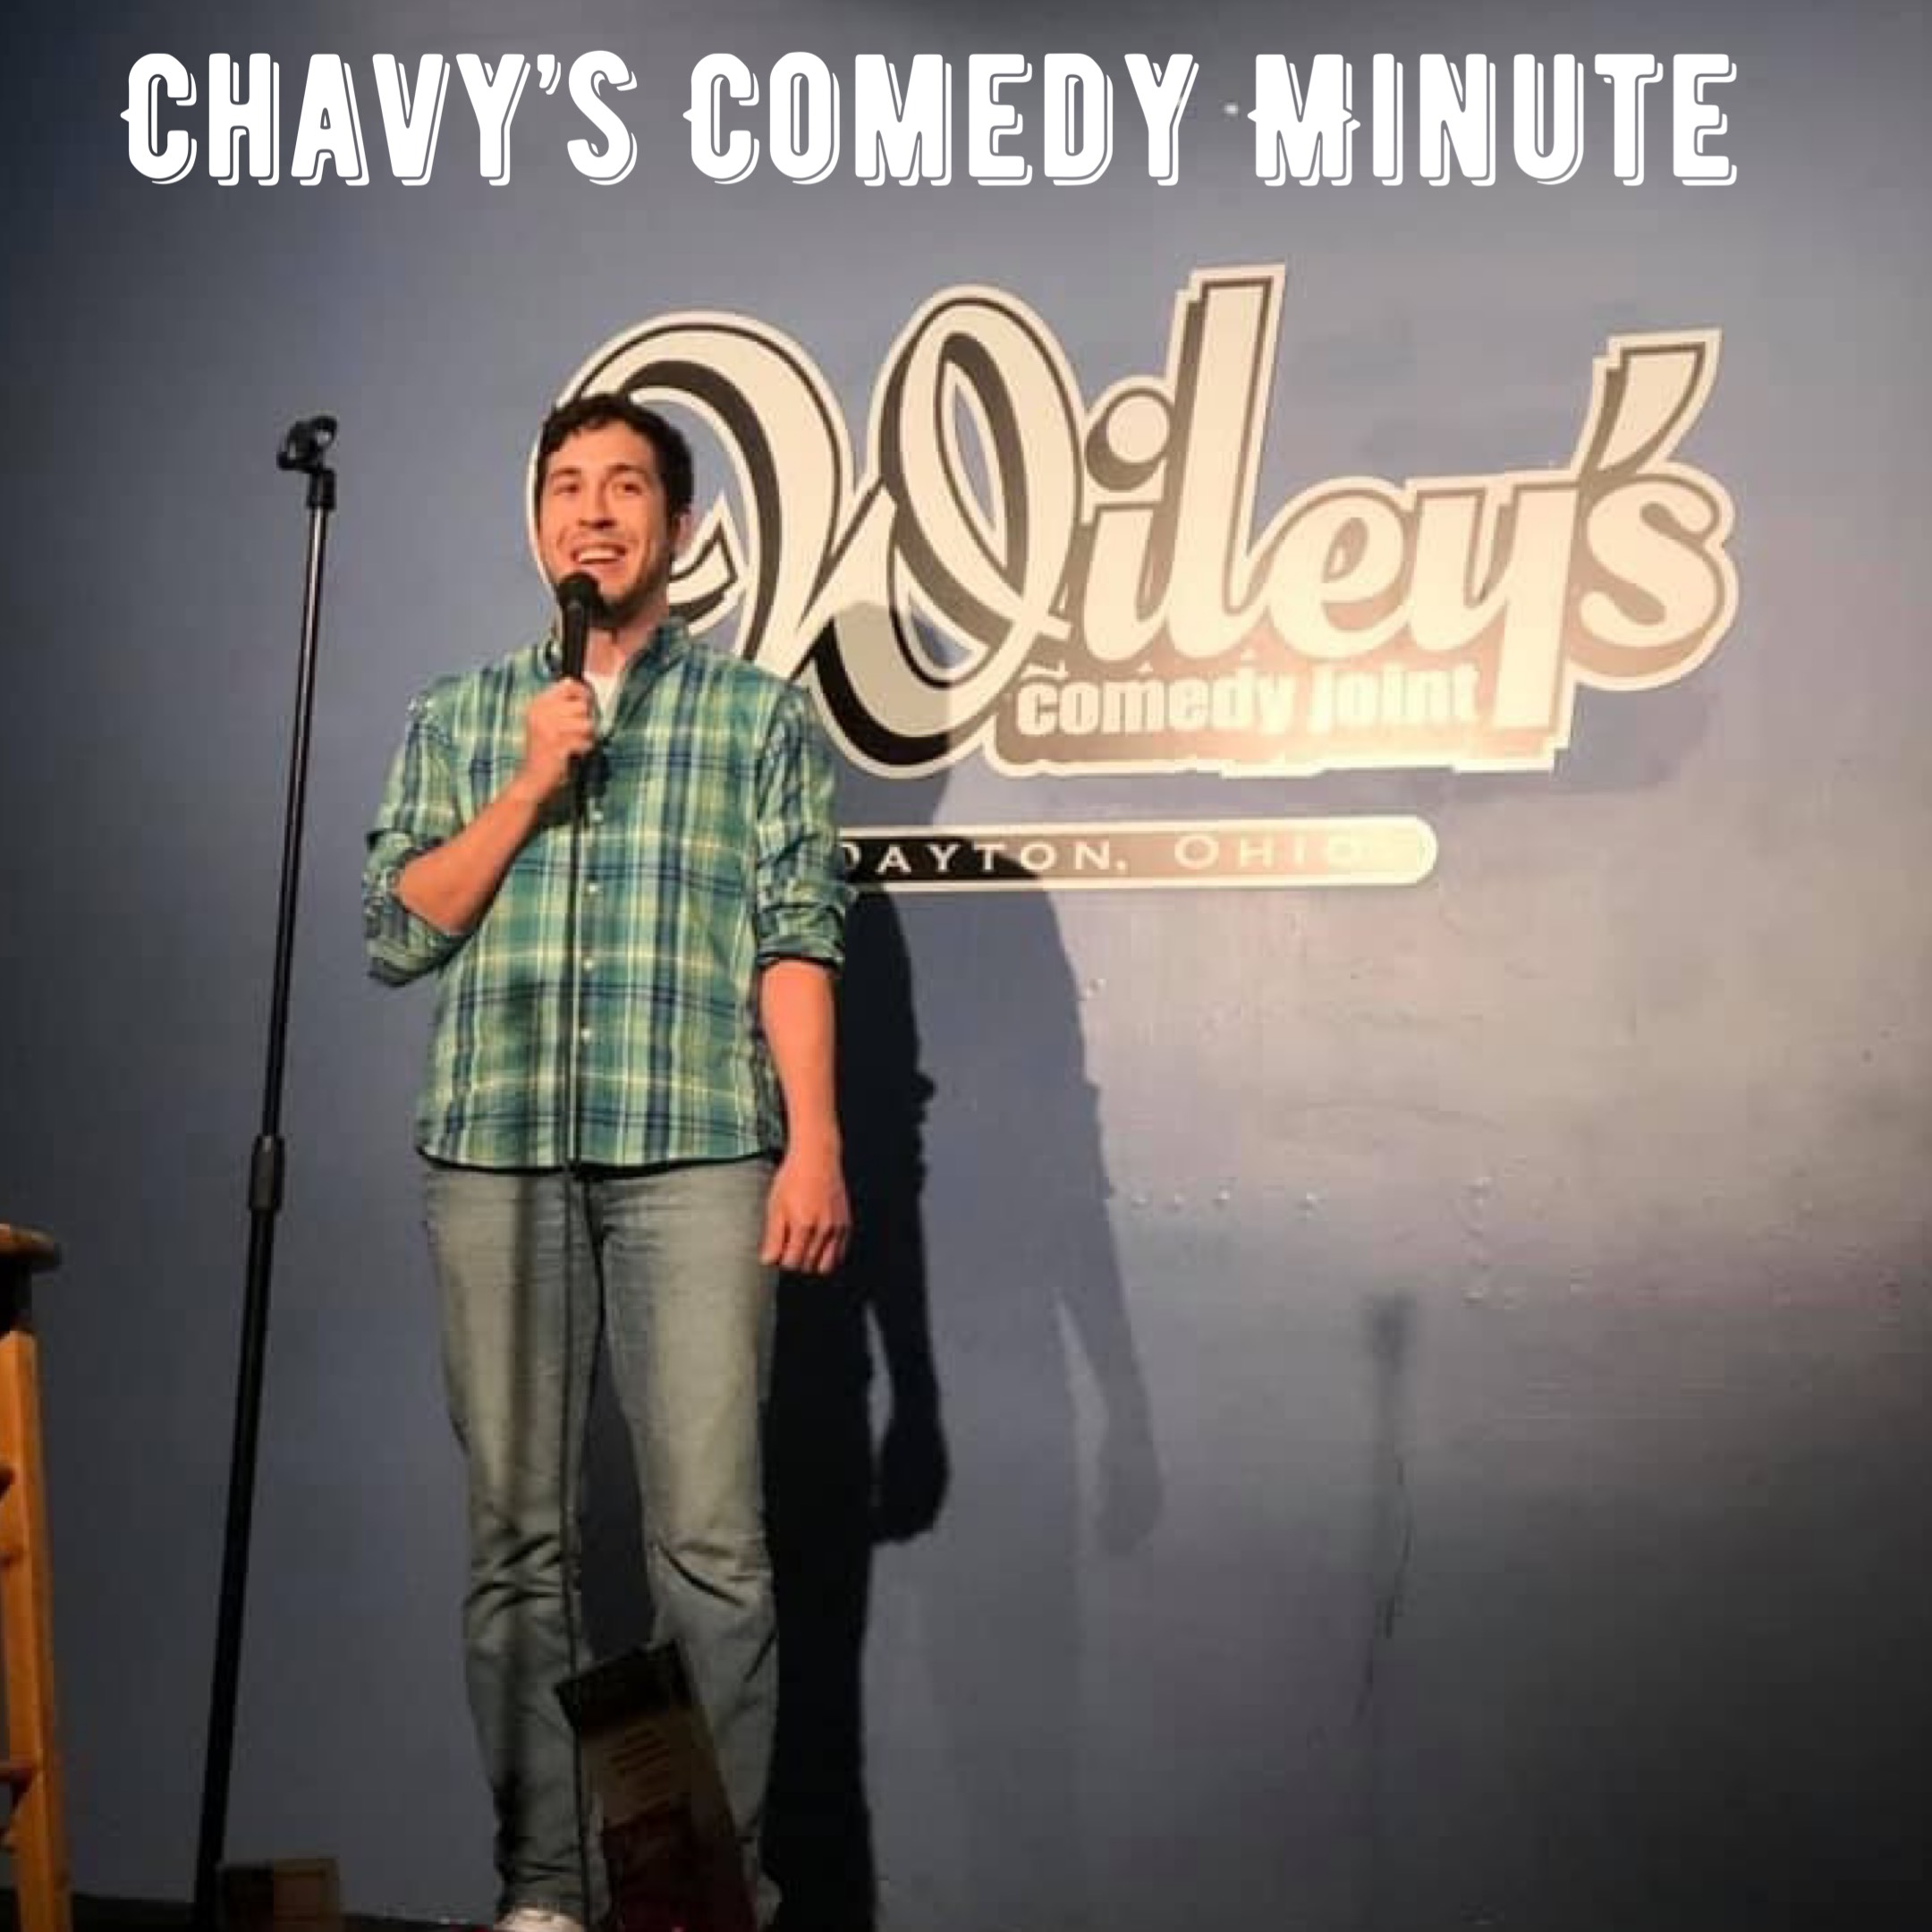 Chavy's Comedy Minute